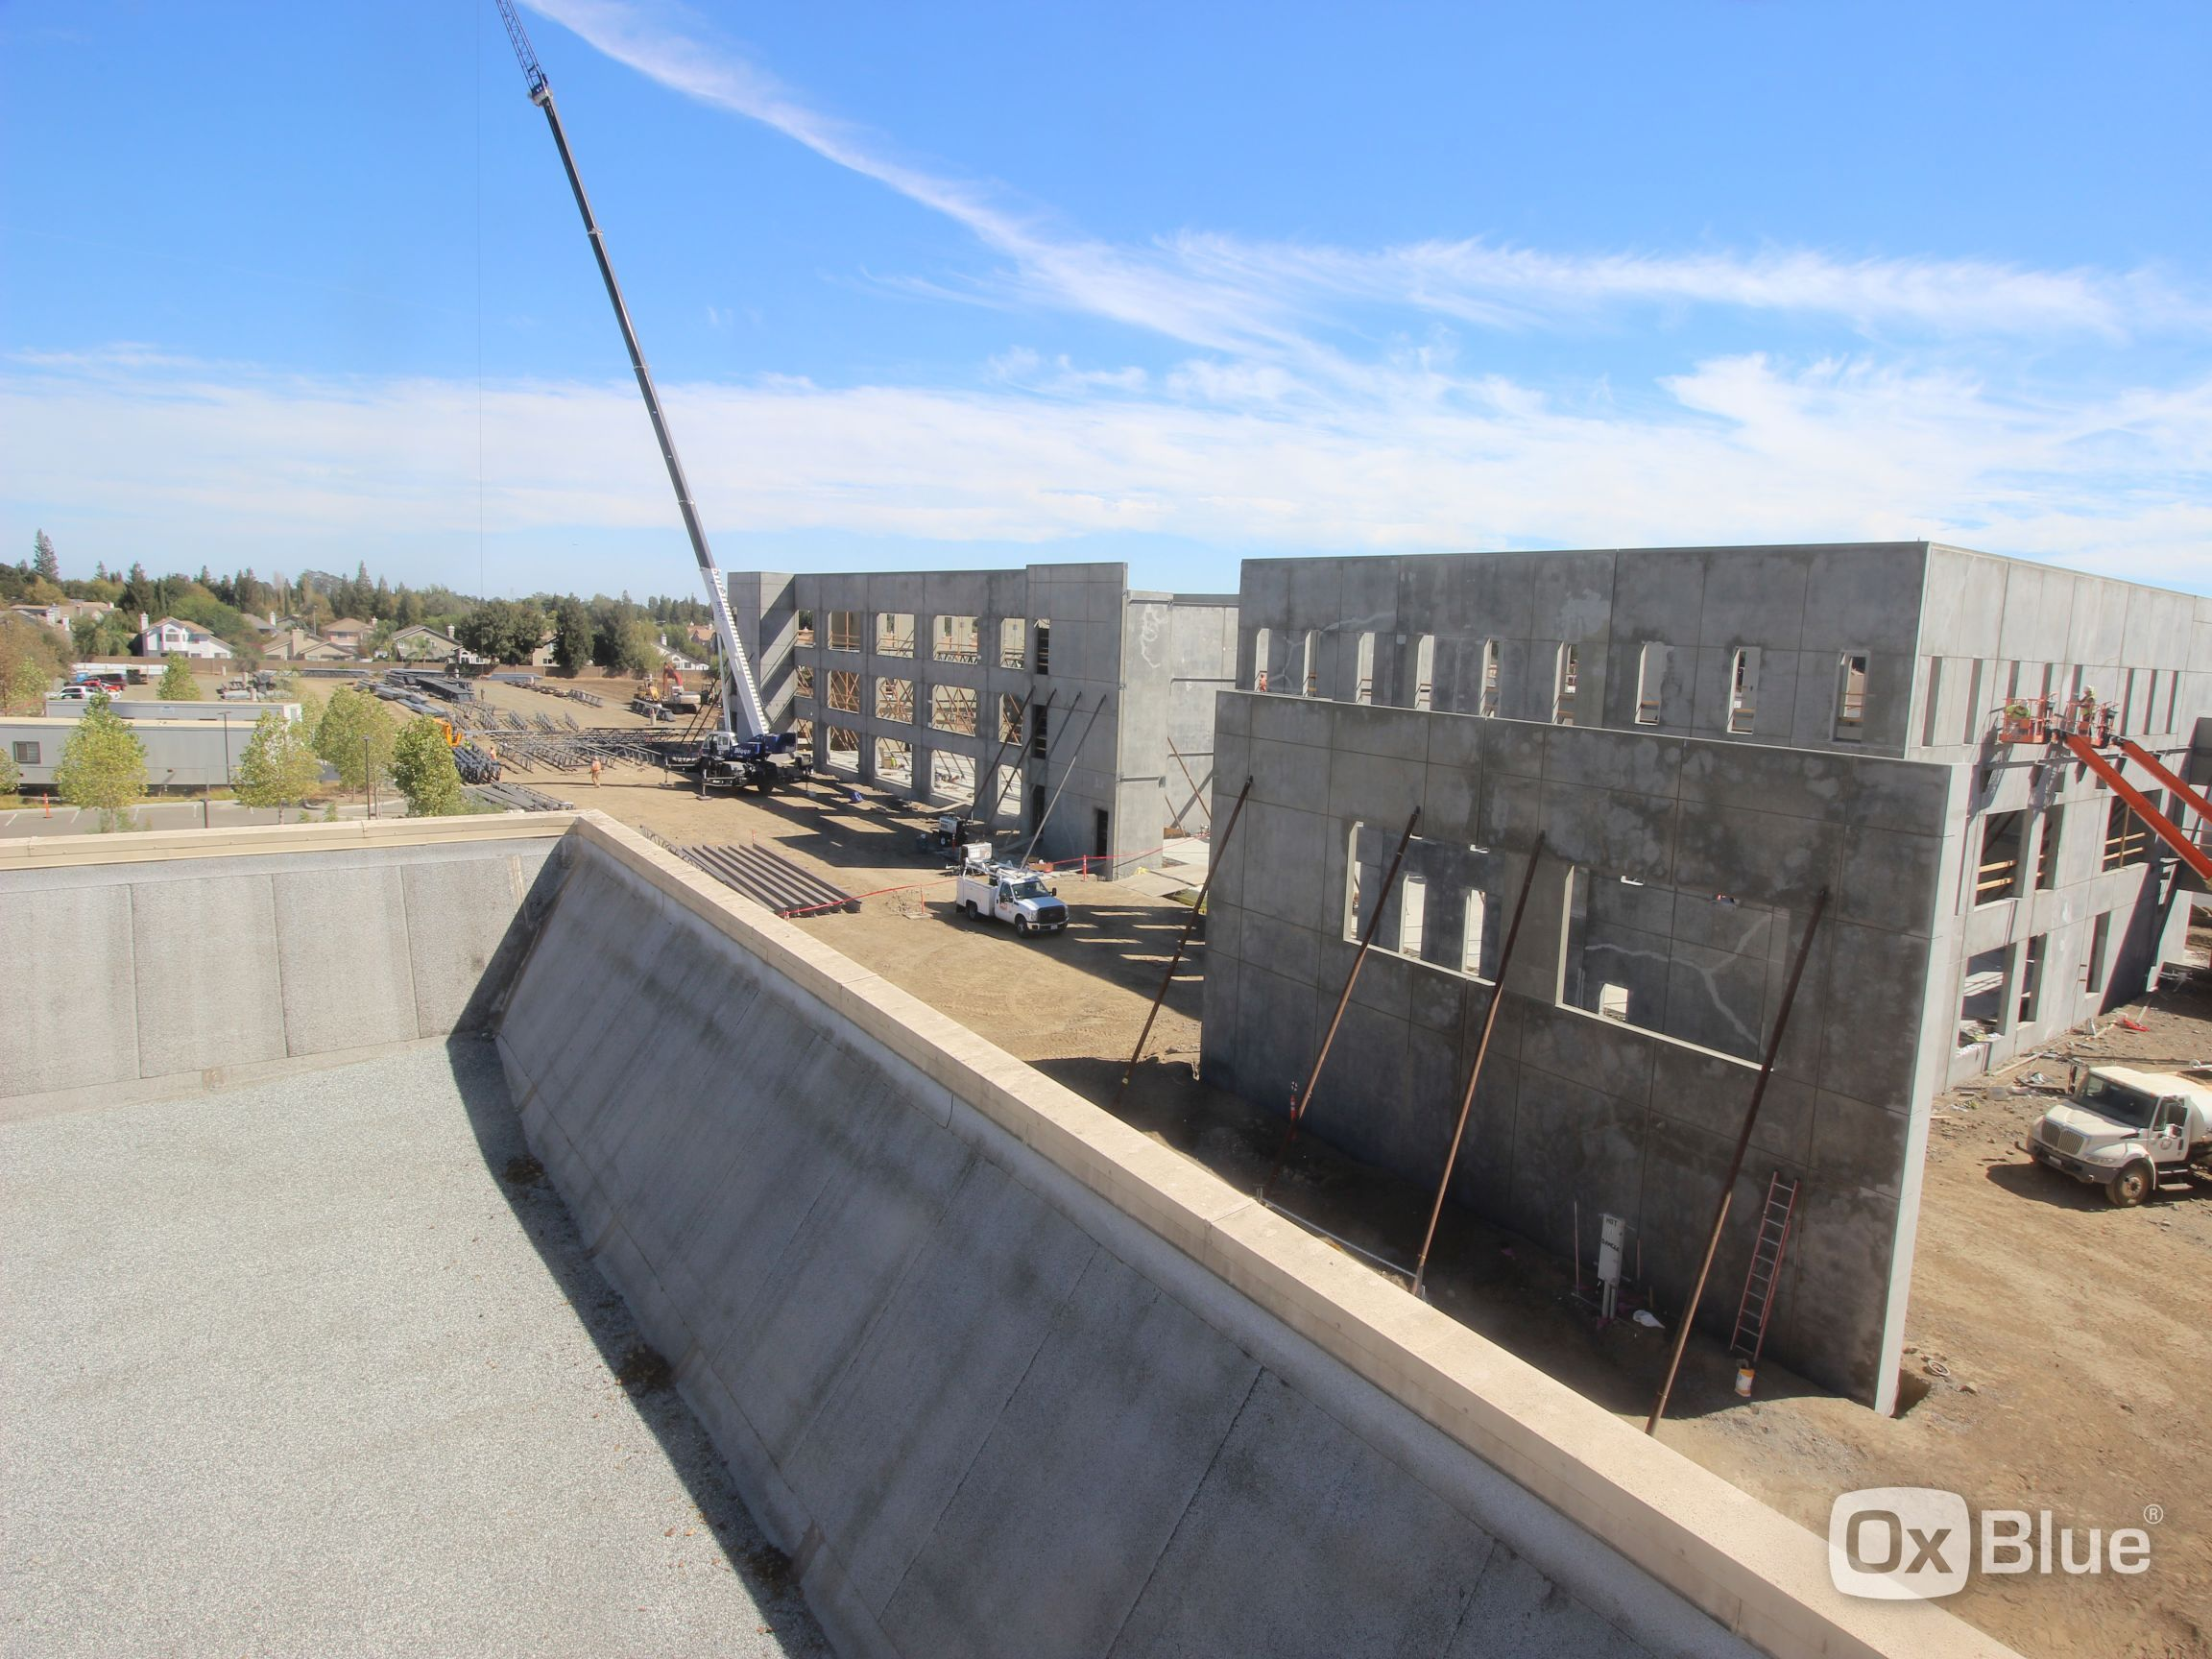 NorthBay VacaValley Wellness Center Construction Web Cam